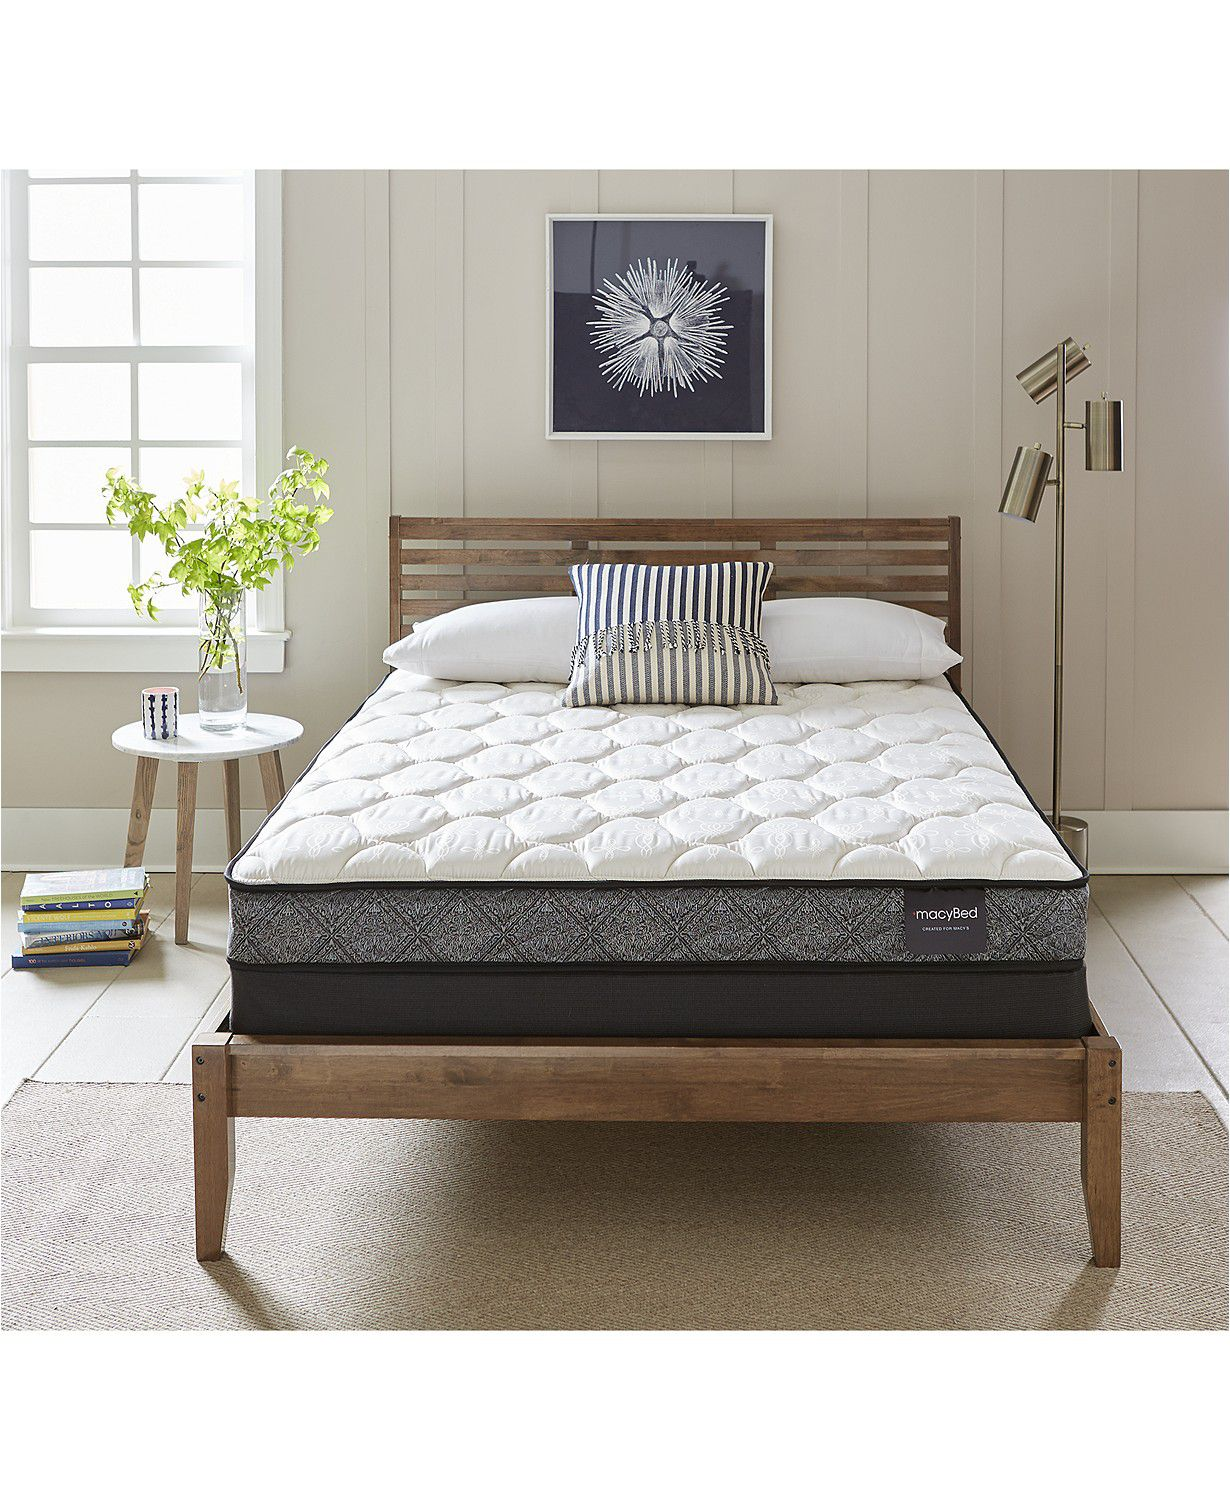 10 best places to buy a mattress of 2019